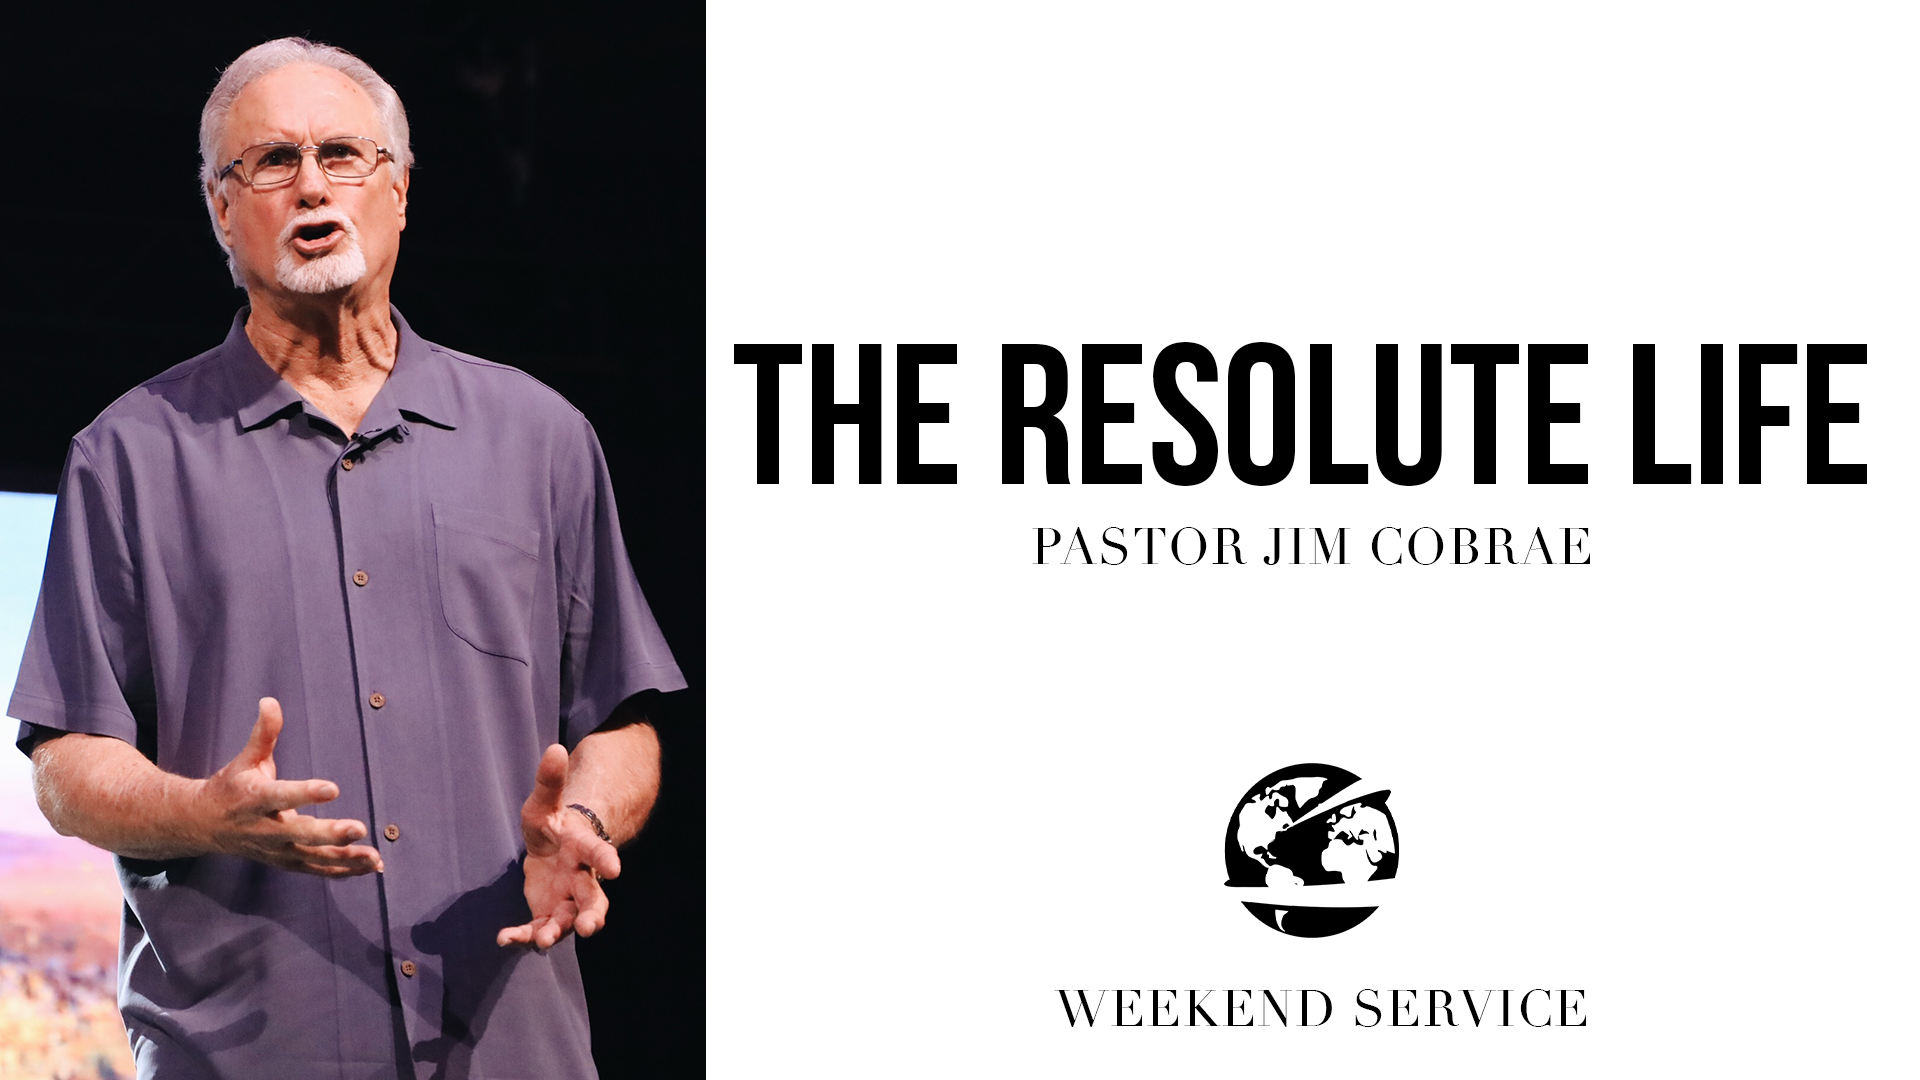 Watch The Resolute Life